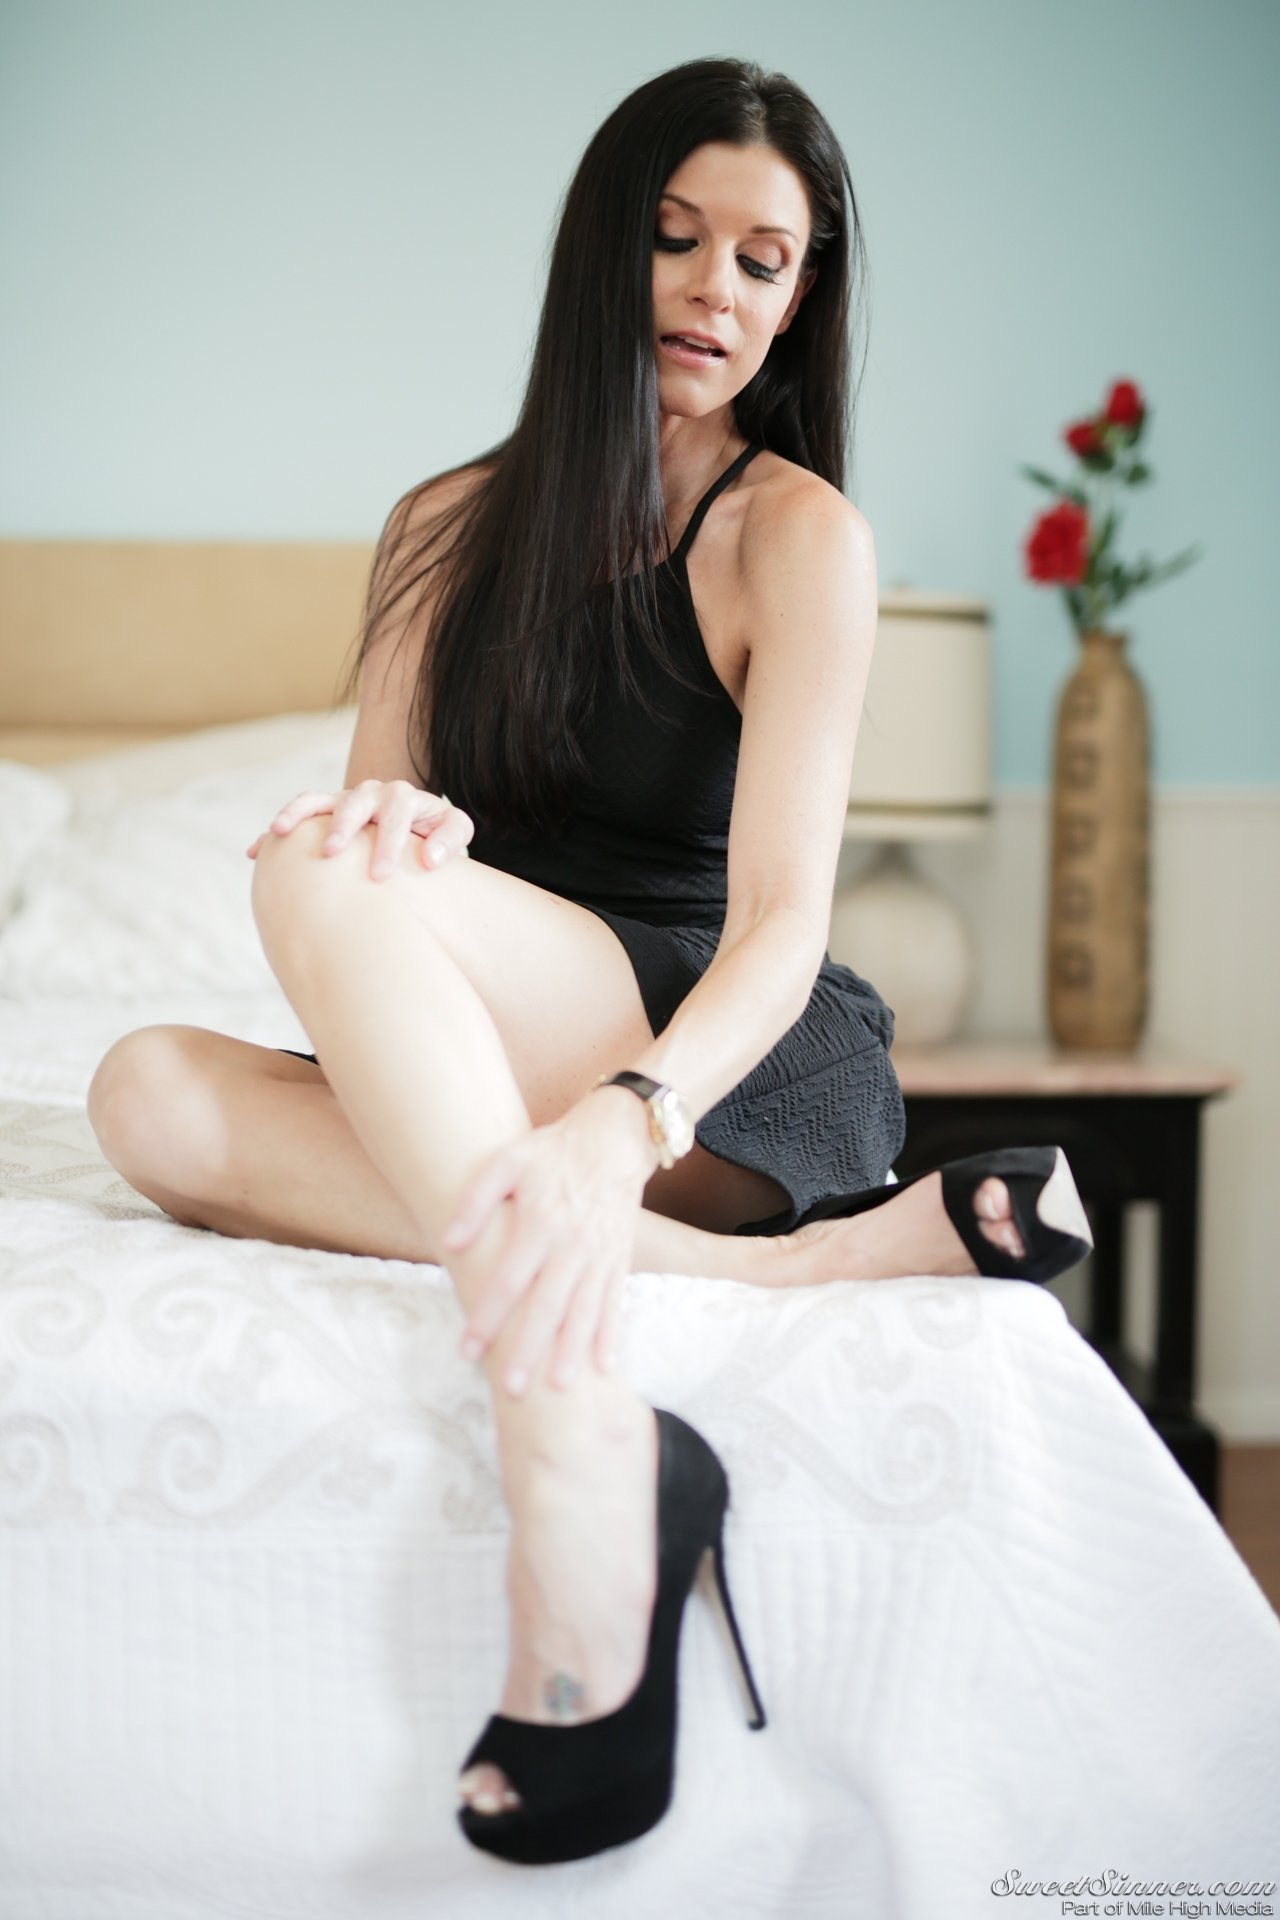 Old suckingher forced son wife japanese xnxx